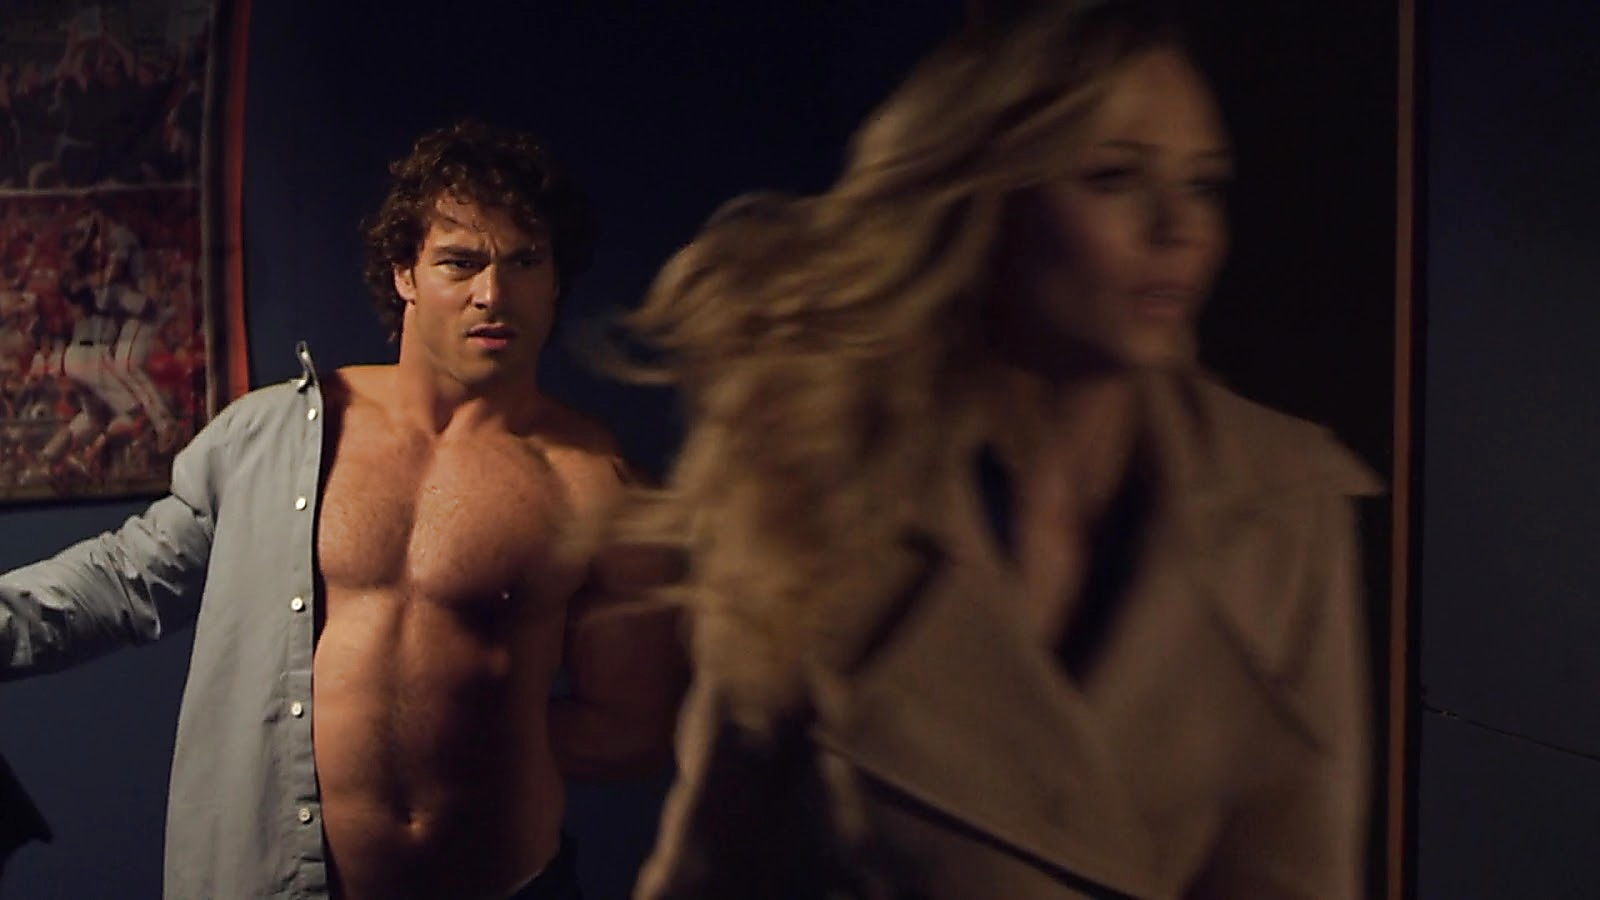 Shawn Roberts sexy shirtless scene February 2, 2020, 12pm